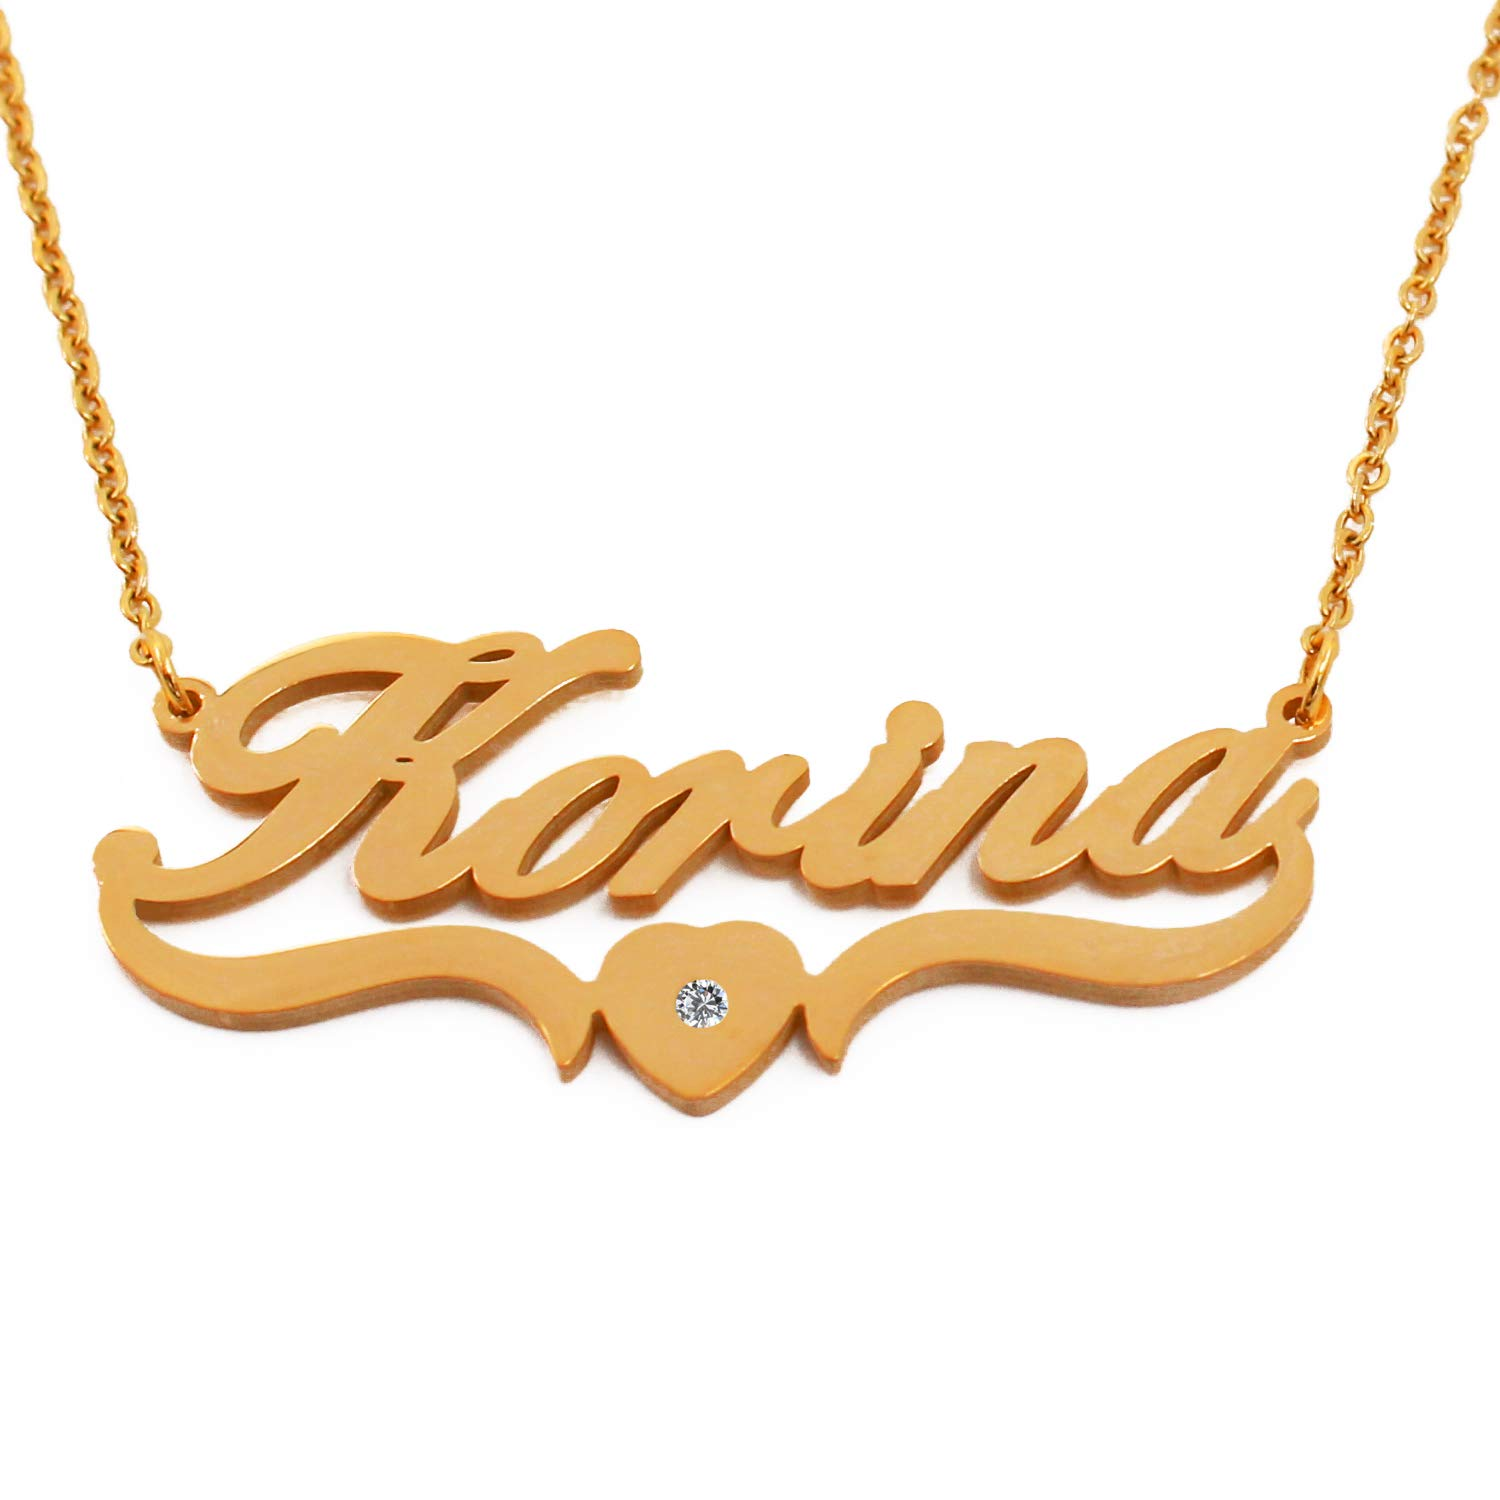 Personalized Custom Name Necklace Korina 18ct Gold Plated Heart Shaped